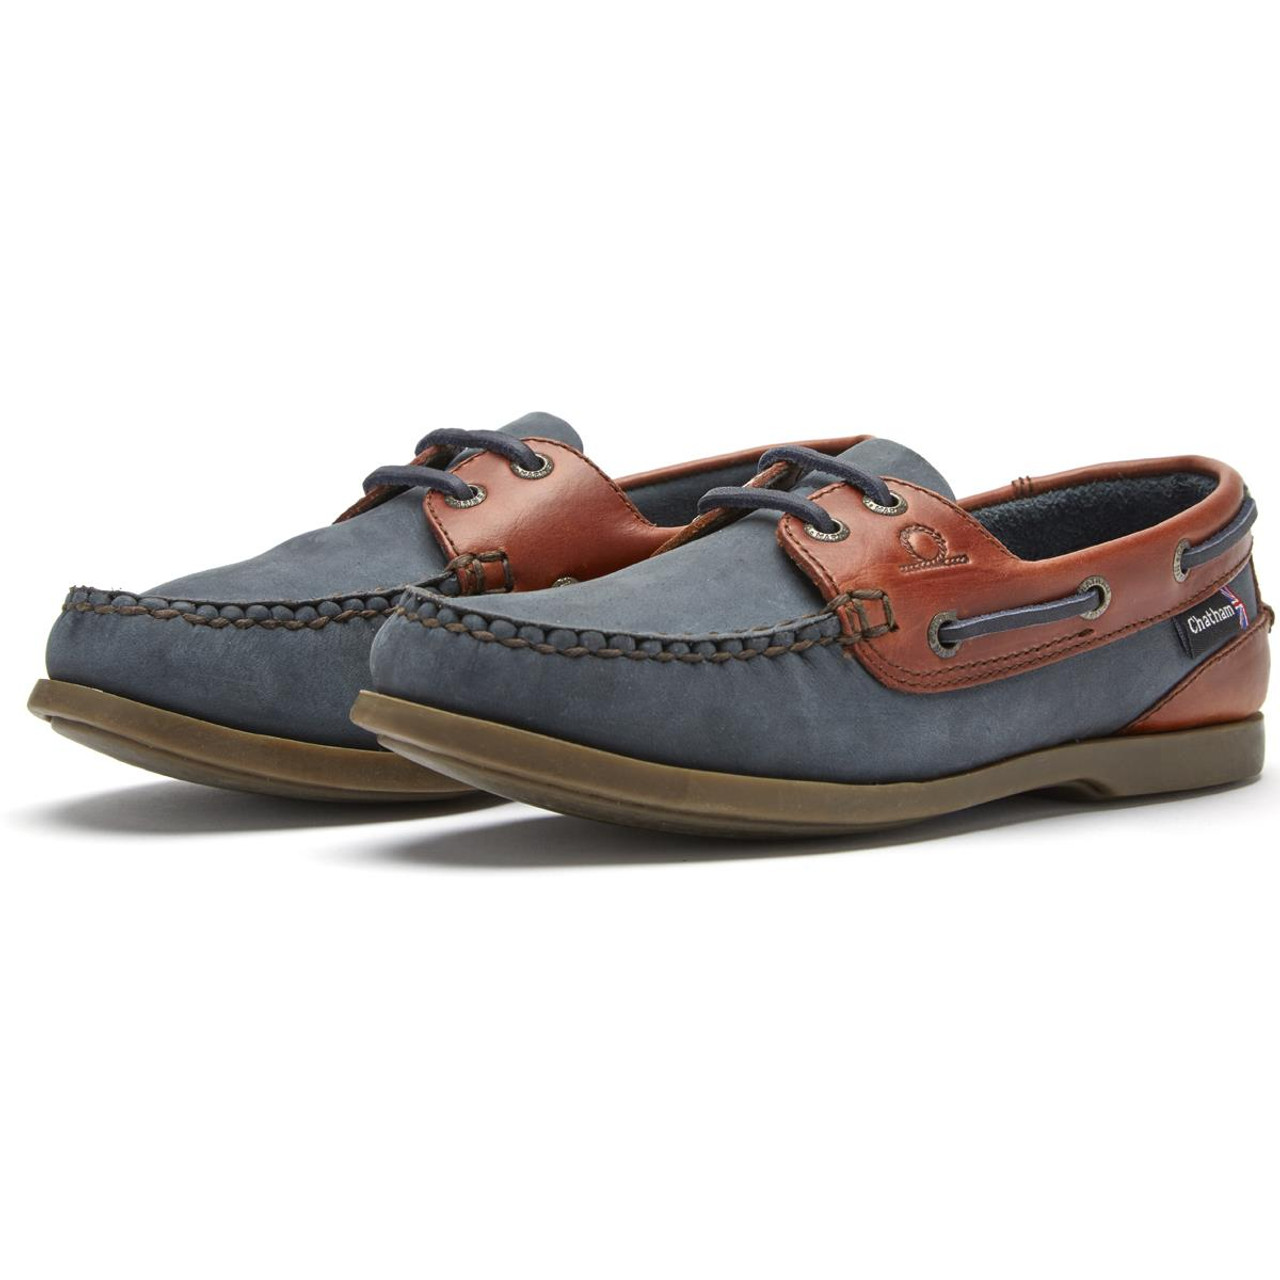 Chatham Bermuda G2 Ladies Deck Shoes